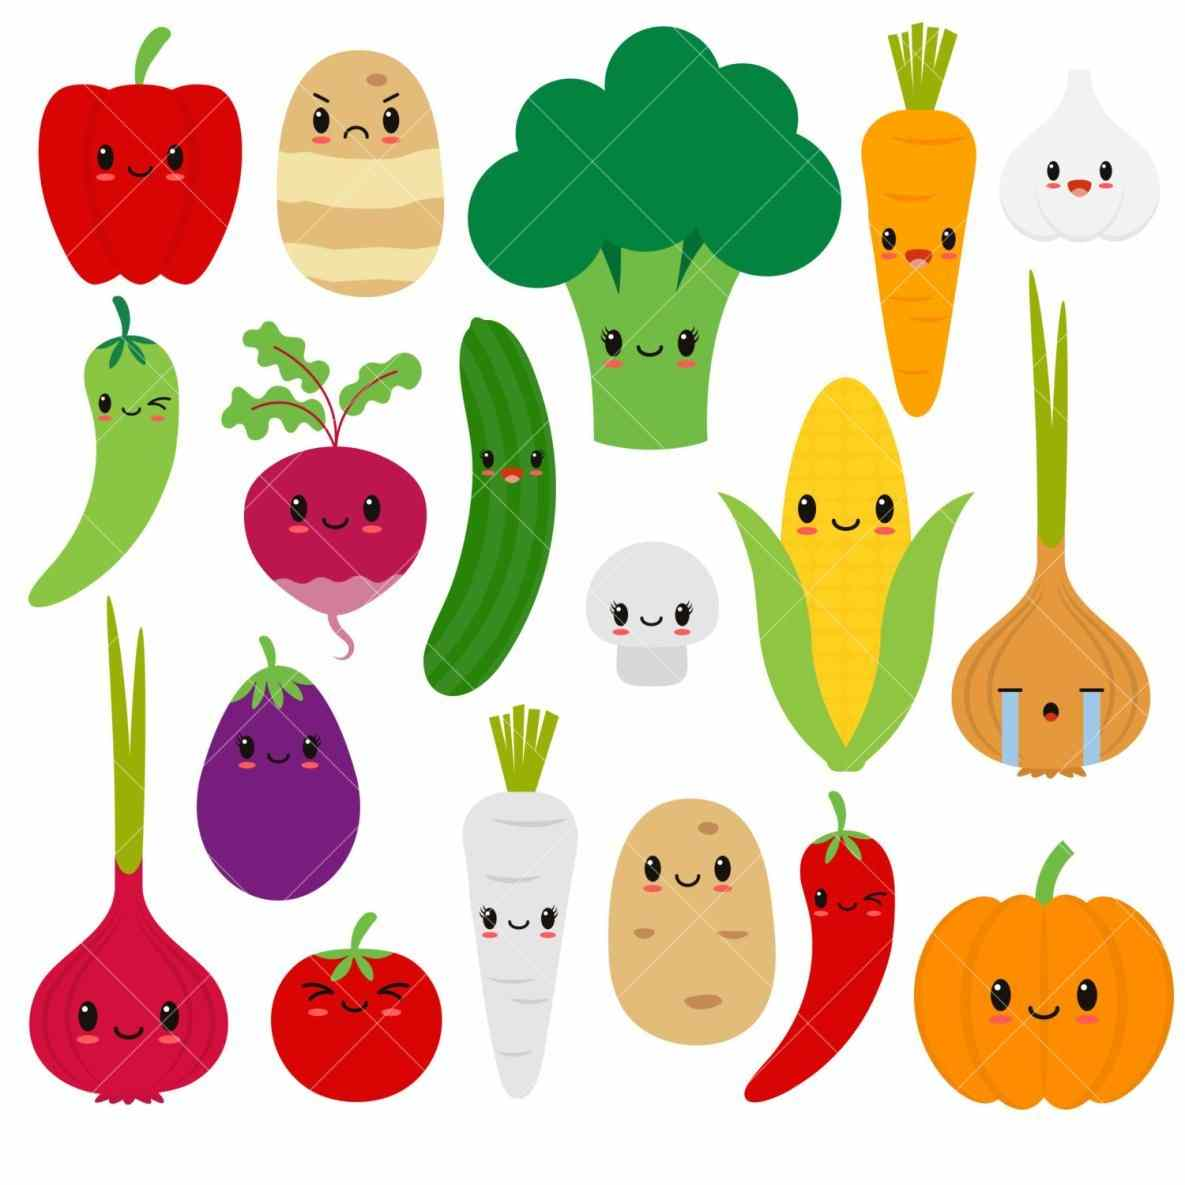 1185x1185 Vegetable Garden Clipart Free Images Circular Flow Diagram Example